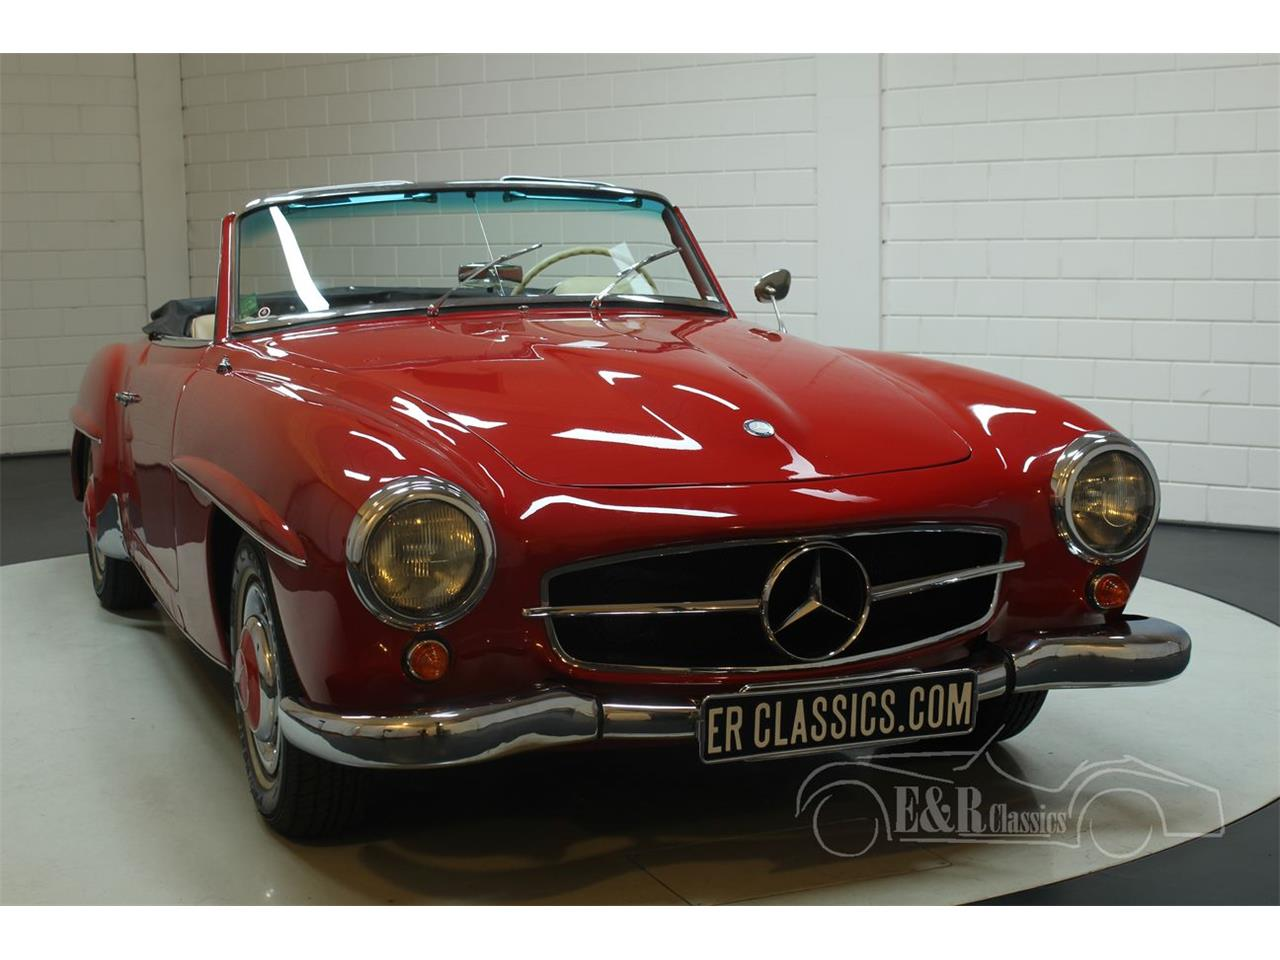 Large Picture of 1956 Mercedes-Benz 190SL located in - Keine Angabe - - $118,450.00 Offered by E & R Classics - PH44